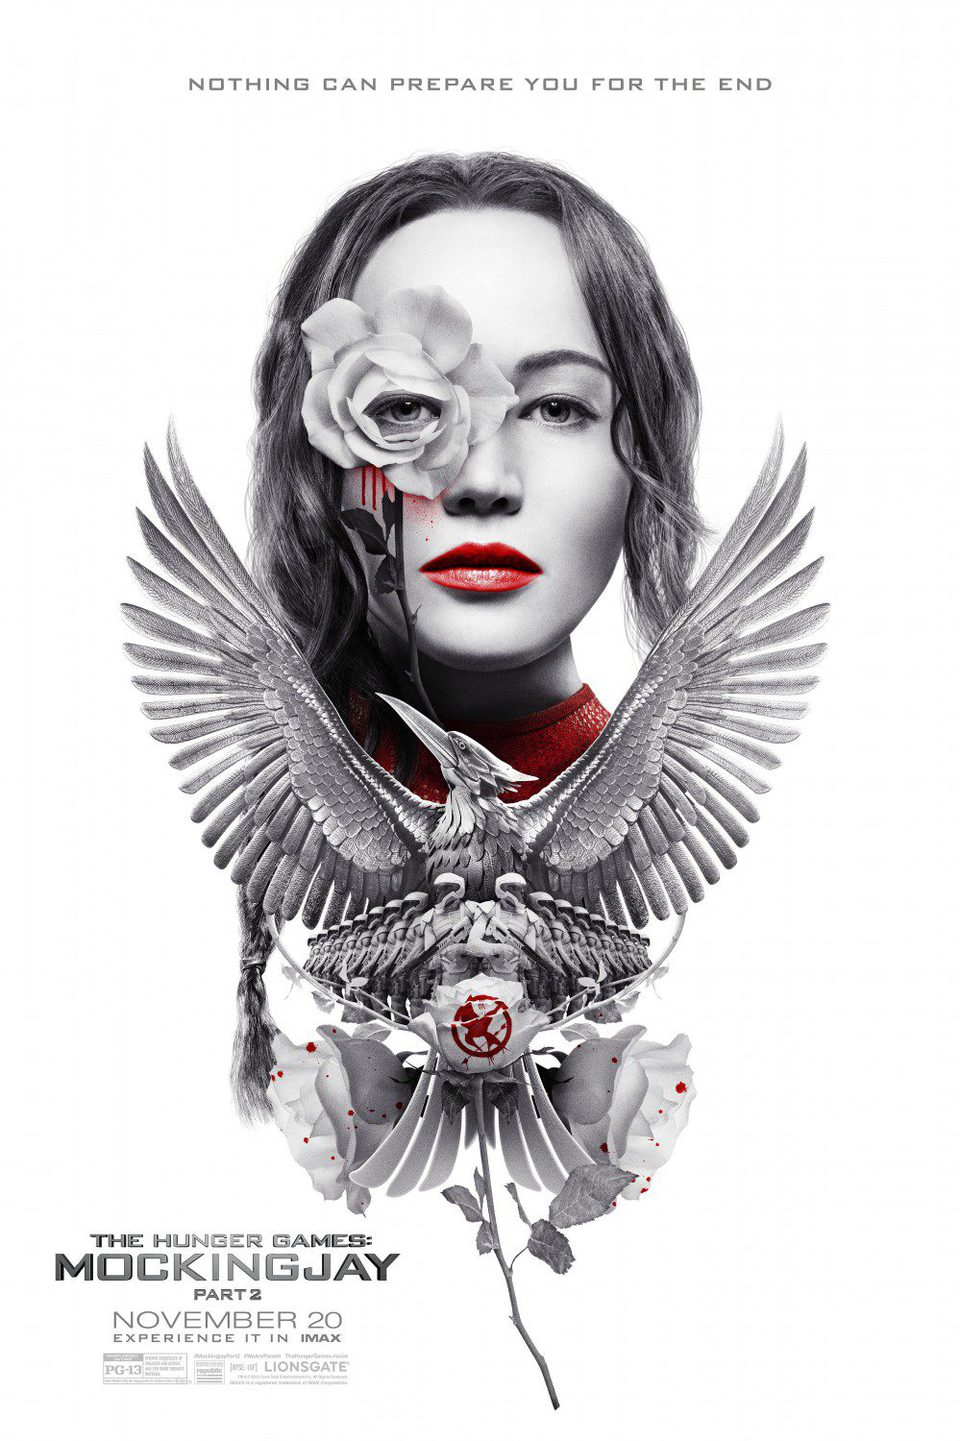 IMAX poster for The Hunger Games: Mockingjay - Part 2